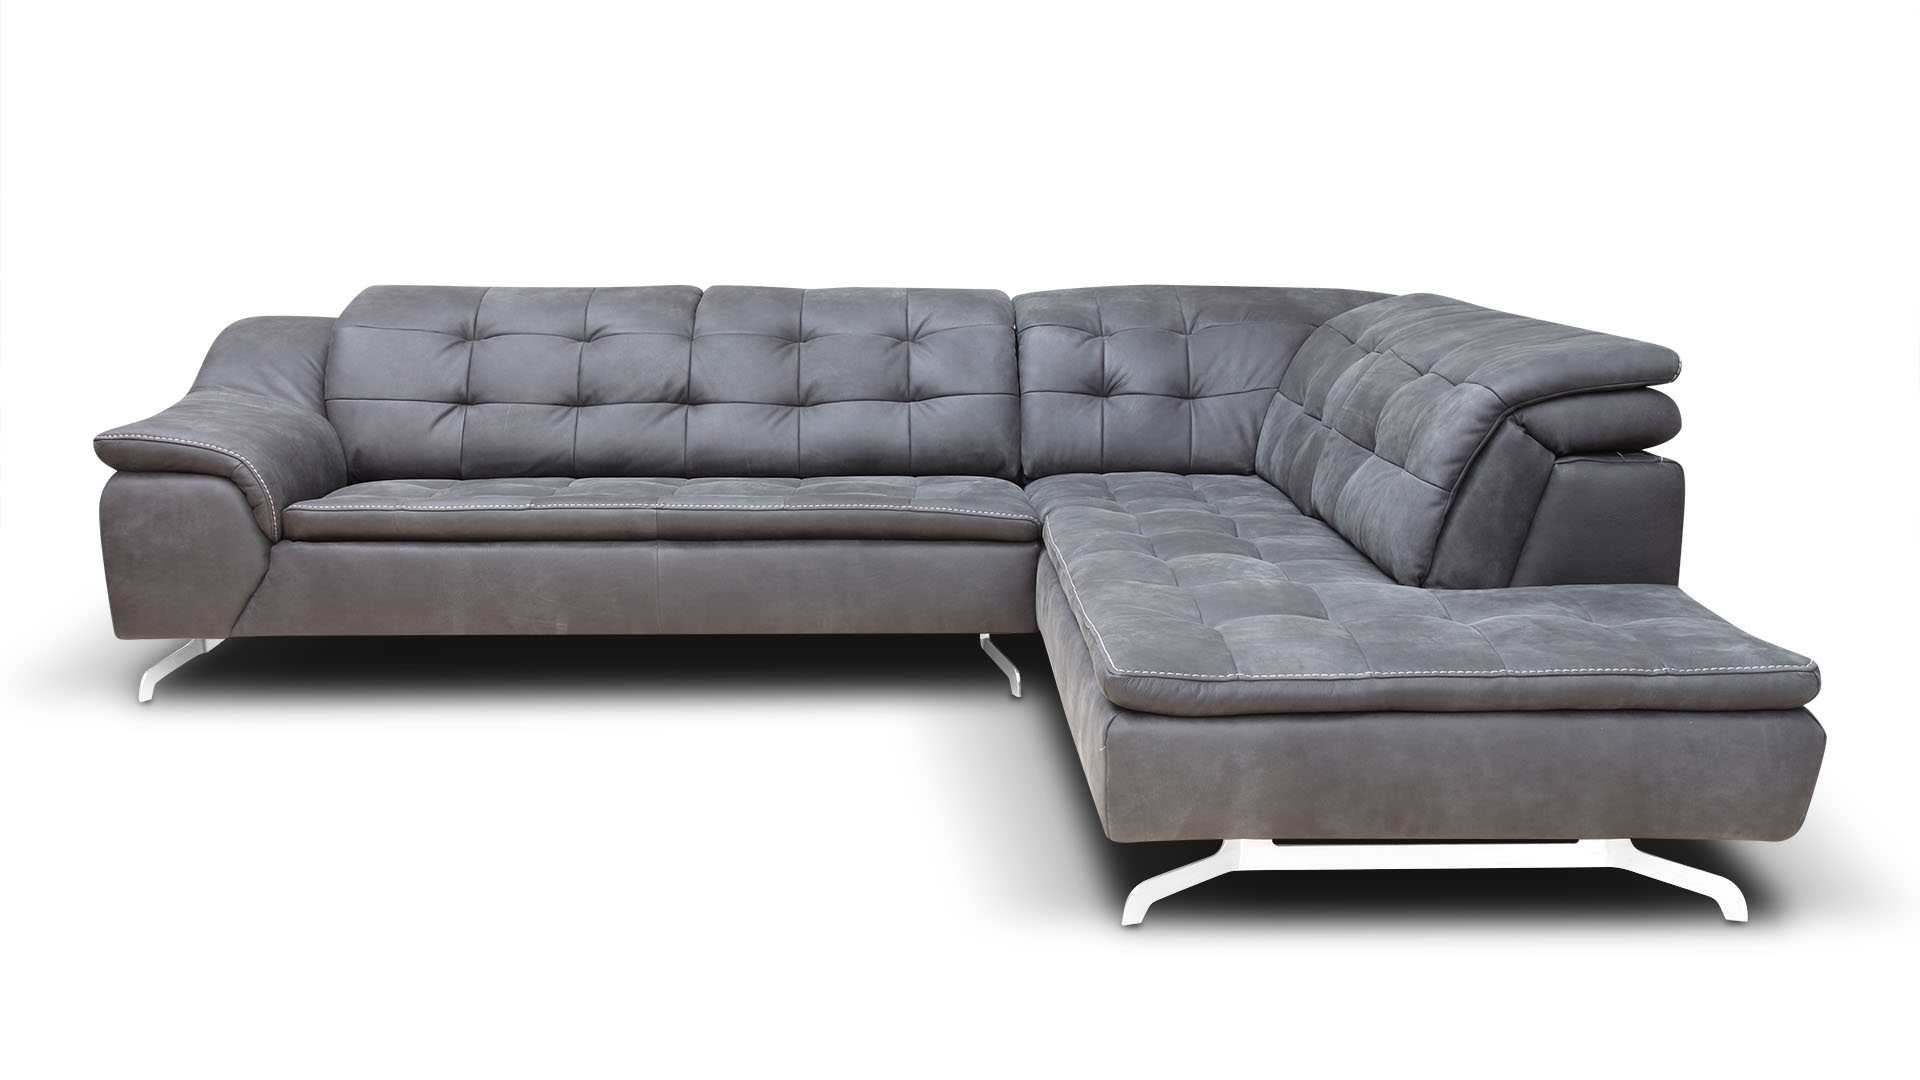 Bracci Cloud 2 sectional